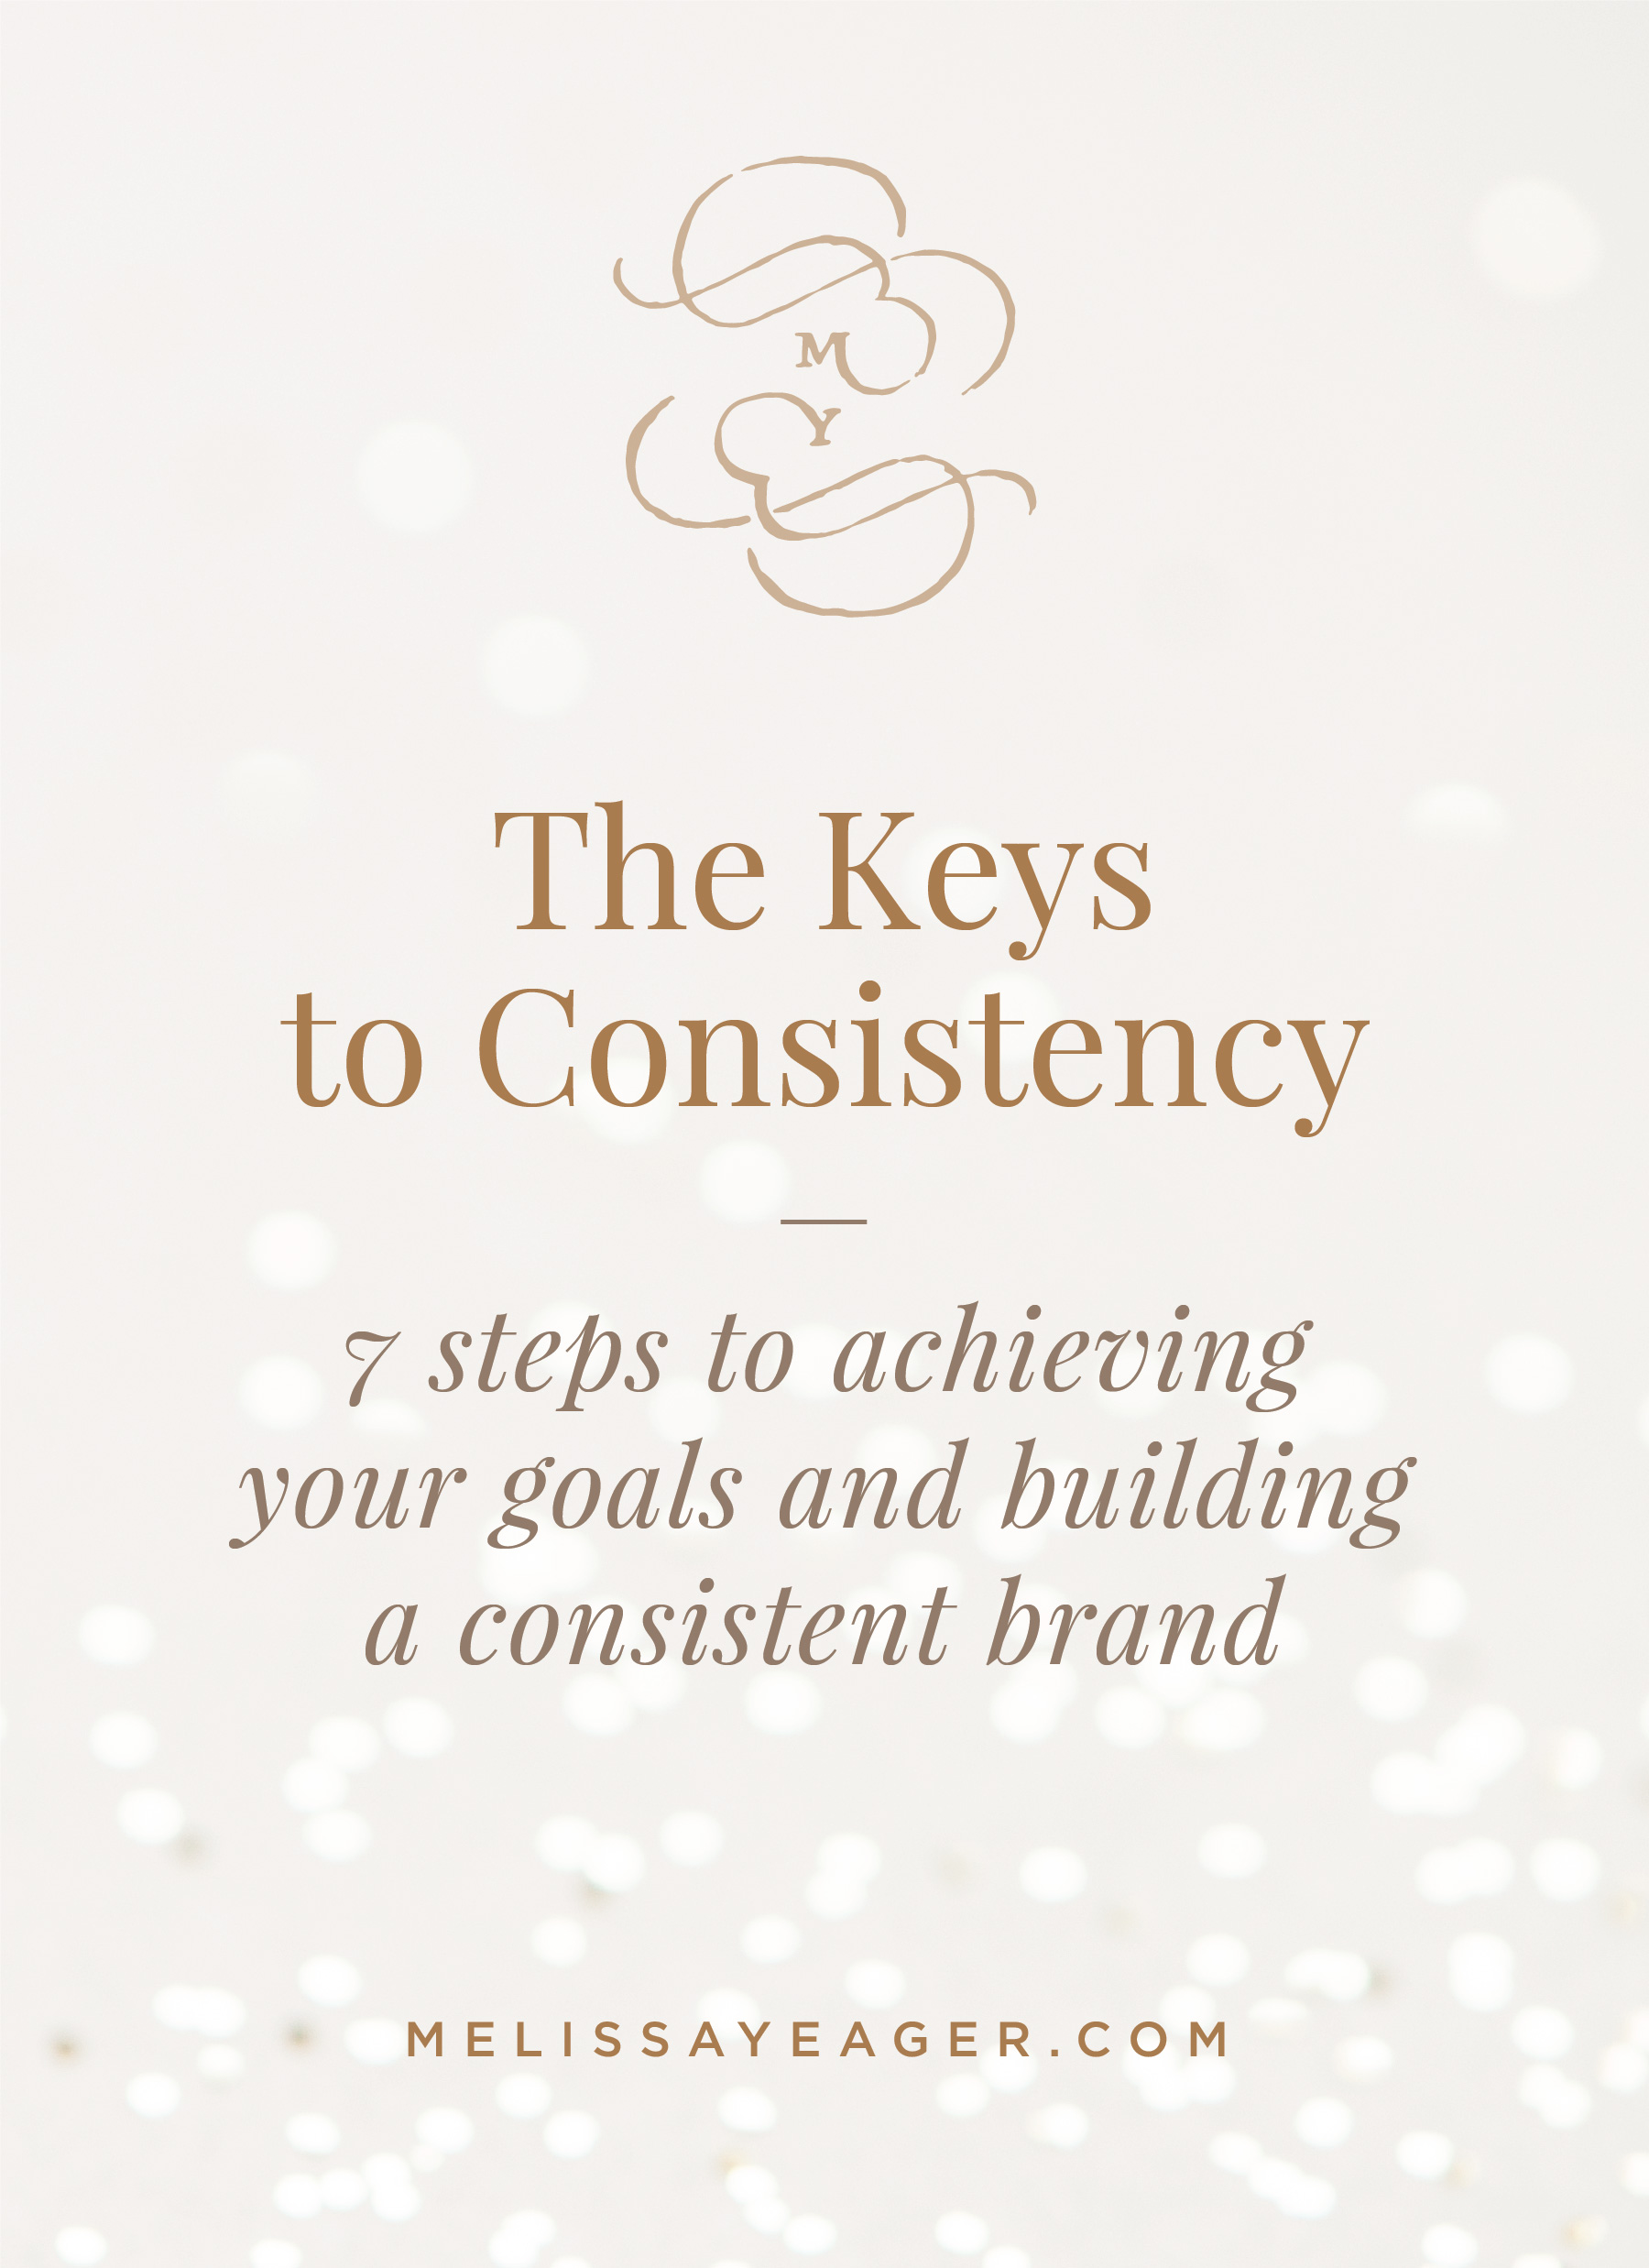 The Keys to Consistency - 7 steps to achieving your goals and building a consistent brand